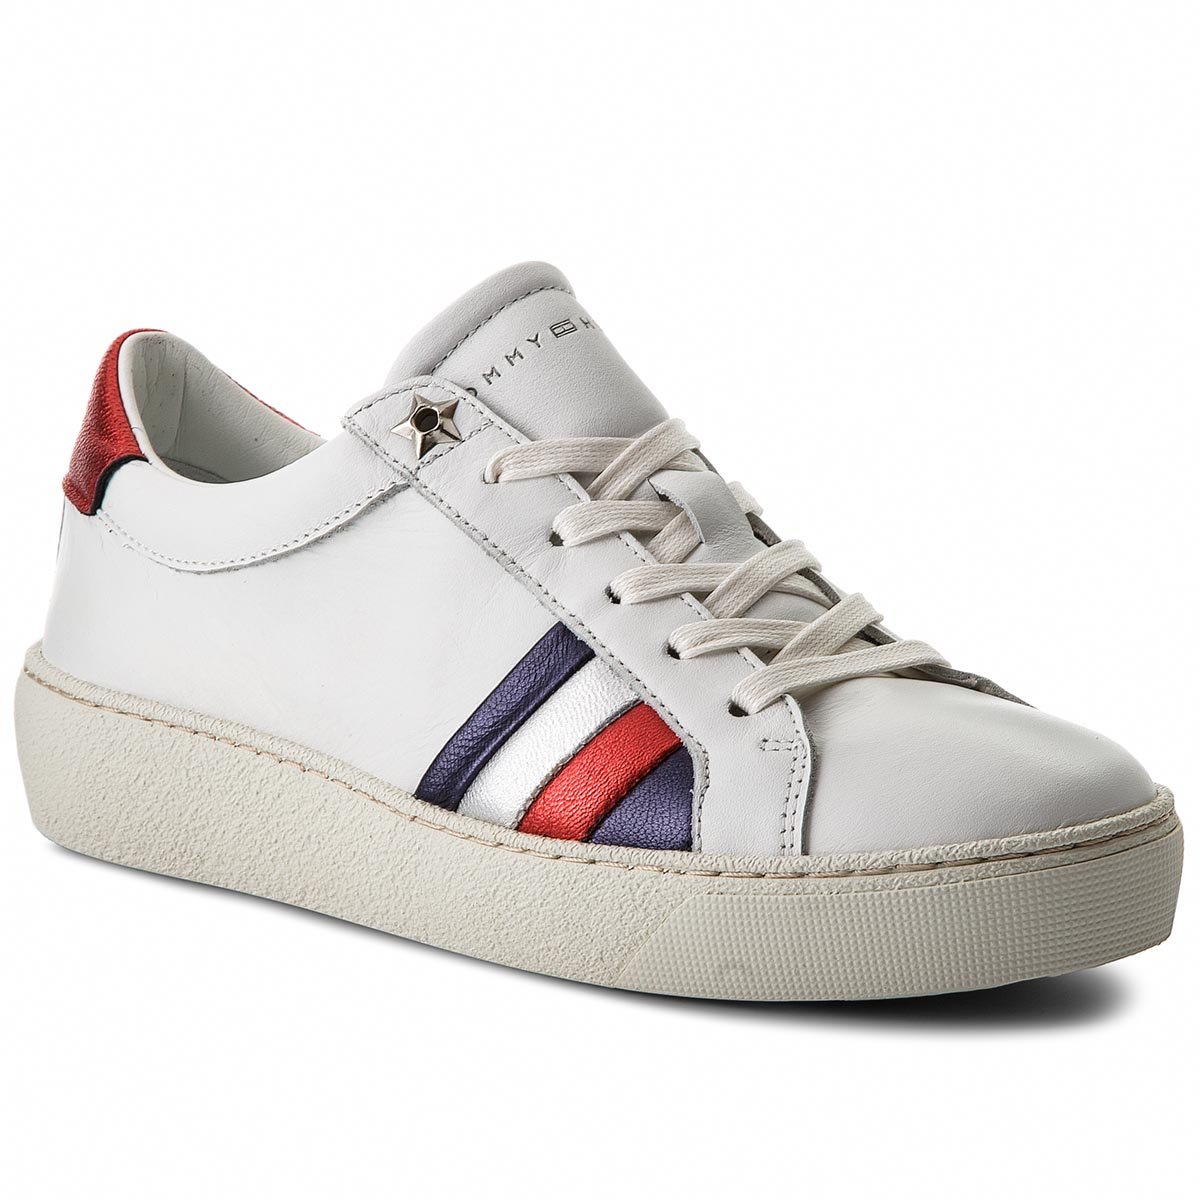 Sneakersy TOMMY HILFIGER - Corporate Iconic Sneaker FW0FW03458 White ... f69b2e5cc42